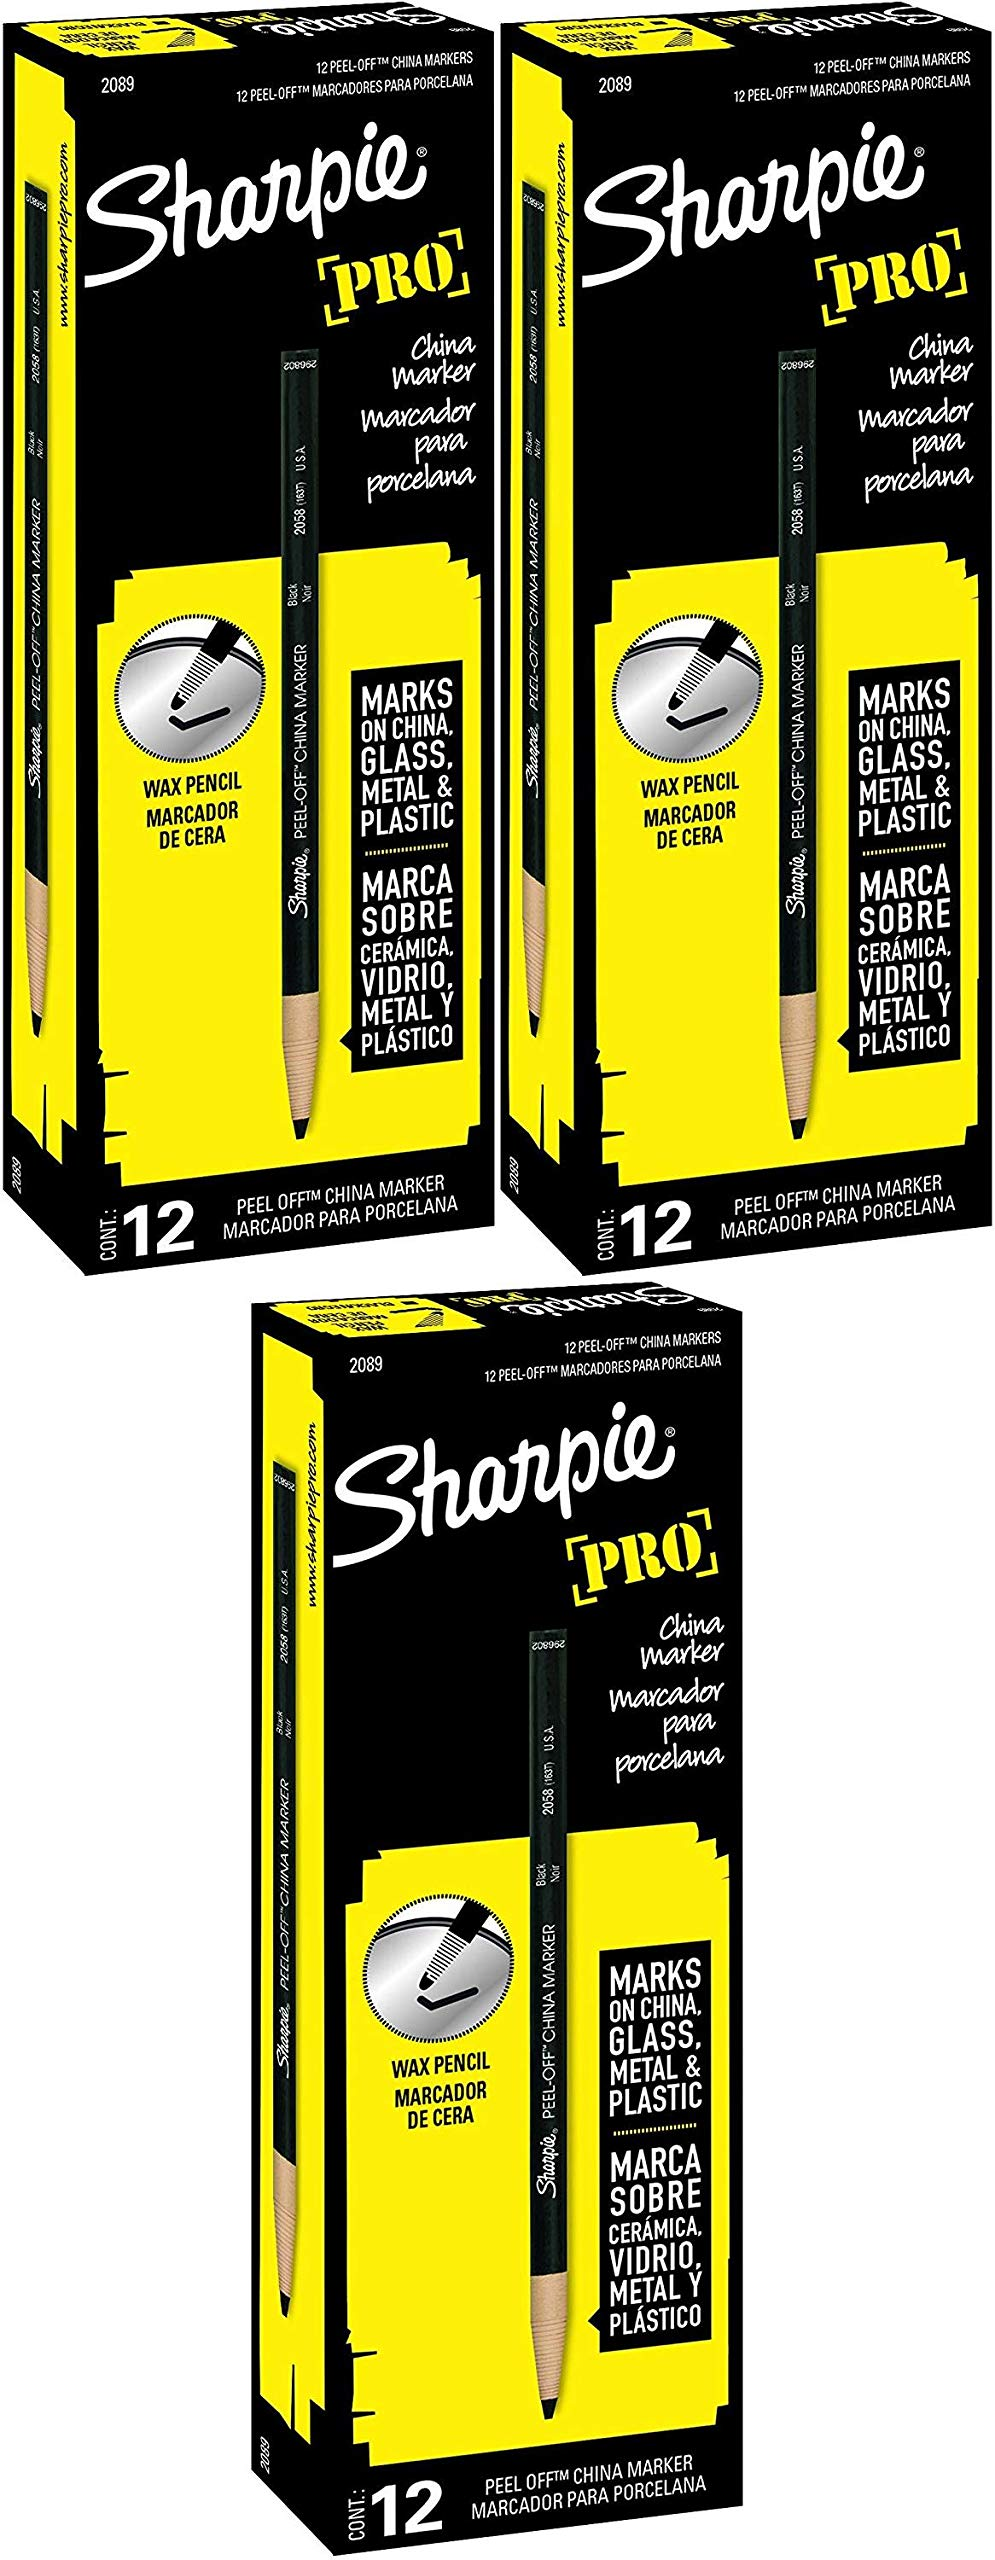 Sharpie PEEL-OFF Marker China, China Marker Bullet, 12 Pack, Black (2089) Pack of 4 by SHARPIE